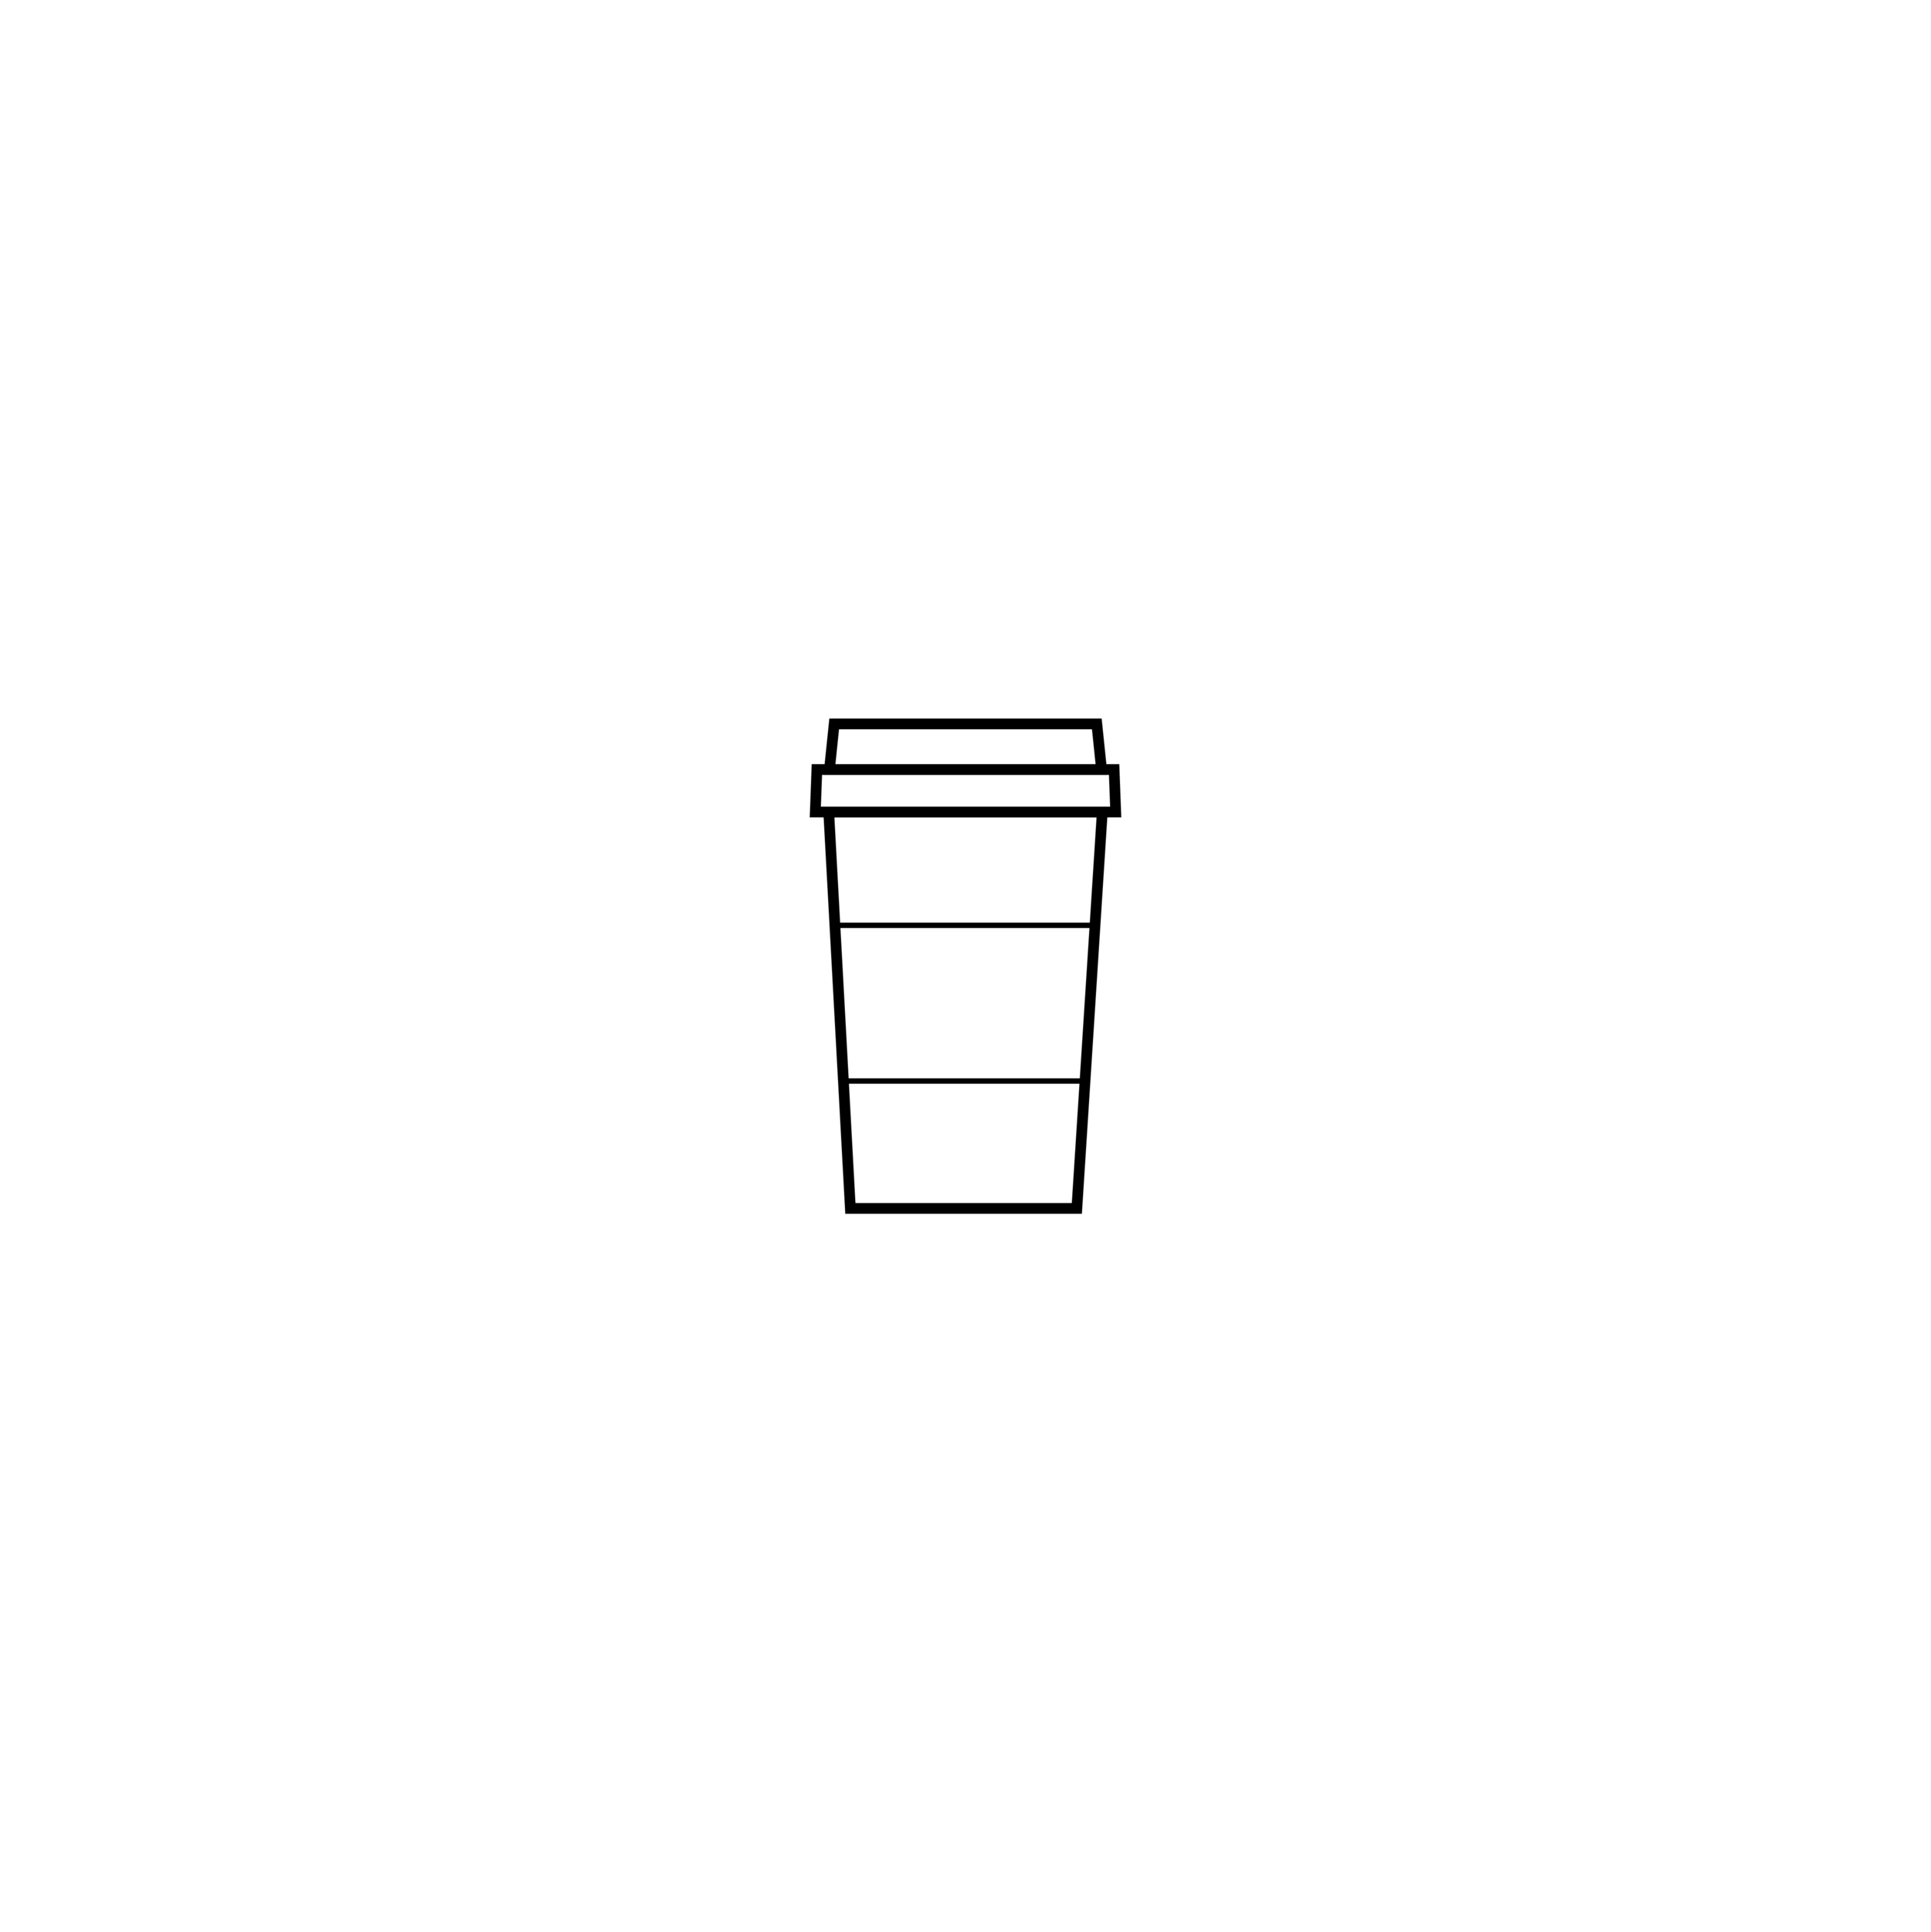 ICONS_1_COFFEE.png